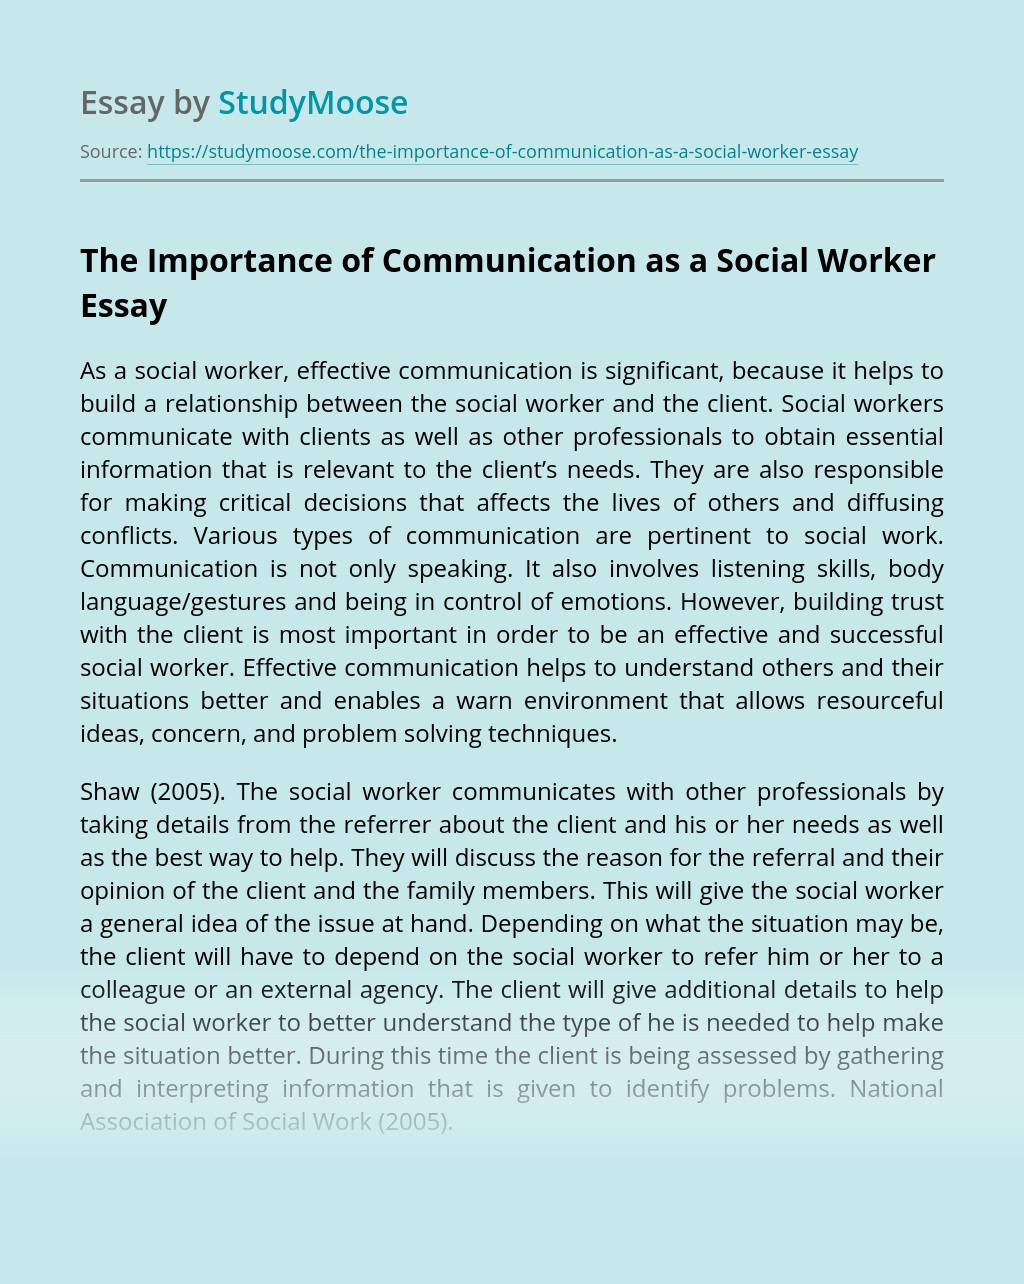 The Importance of Communication as a Social Worker